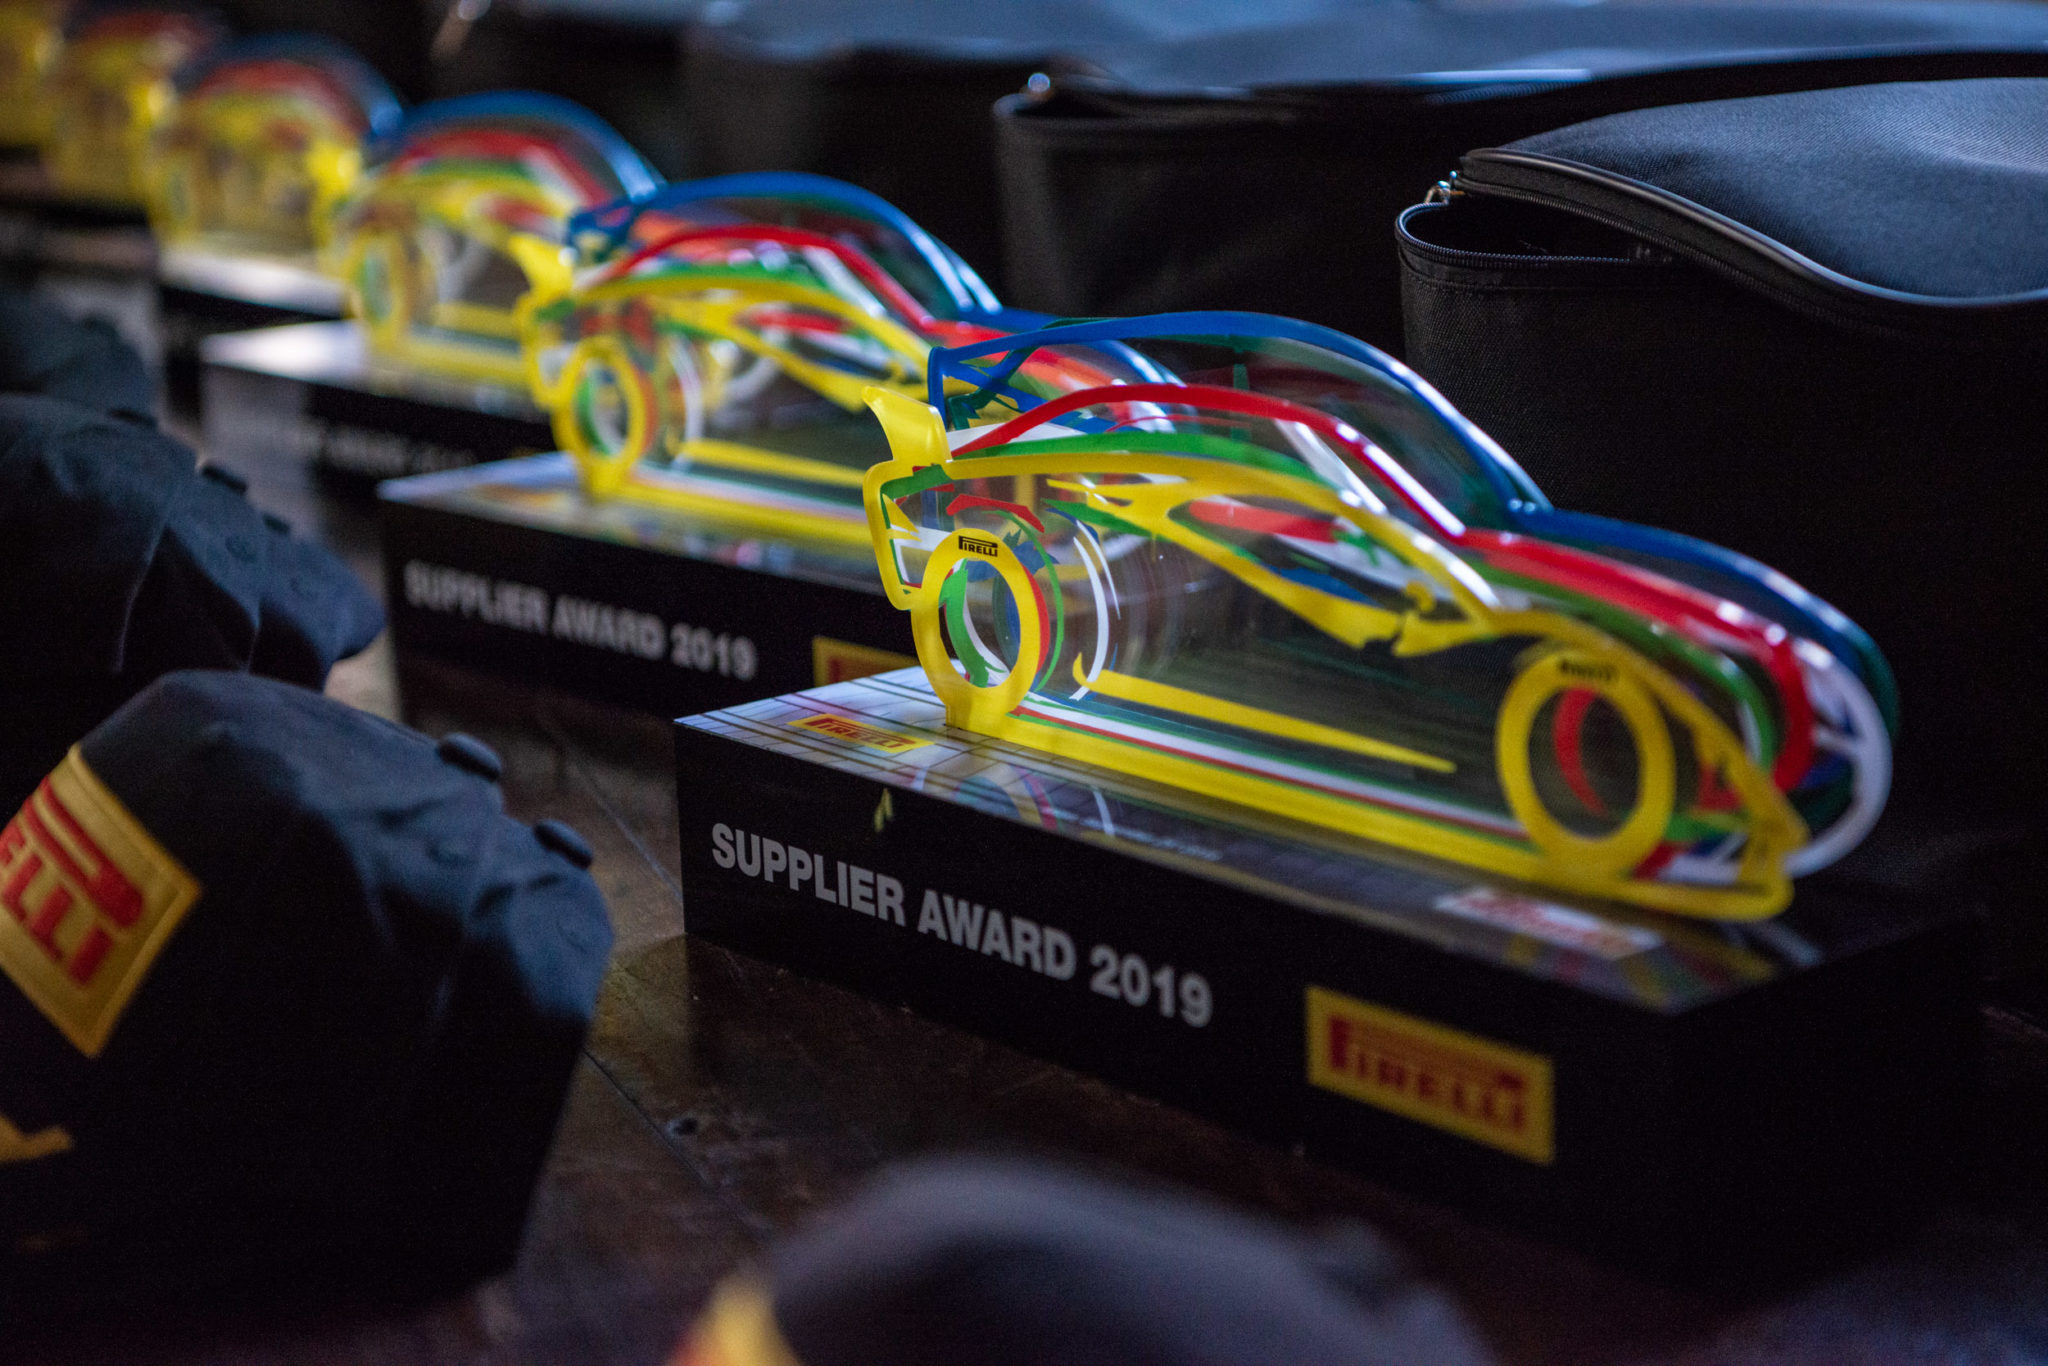 Pirelli Supplier Awards 2019